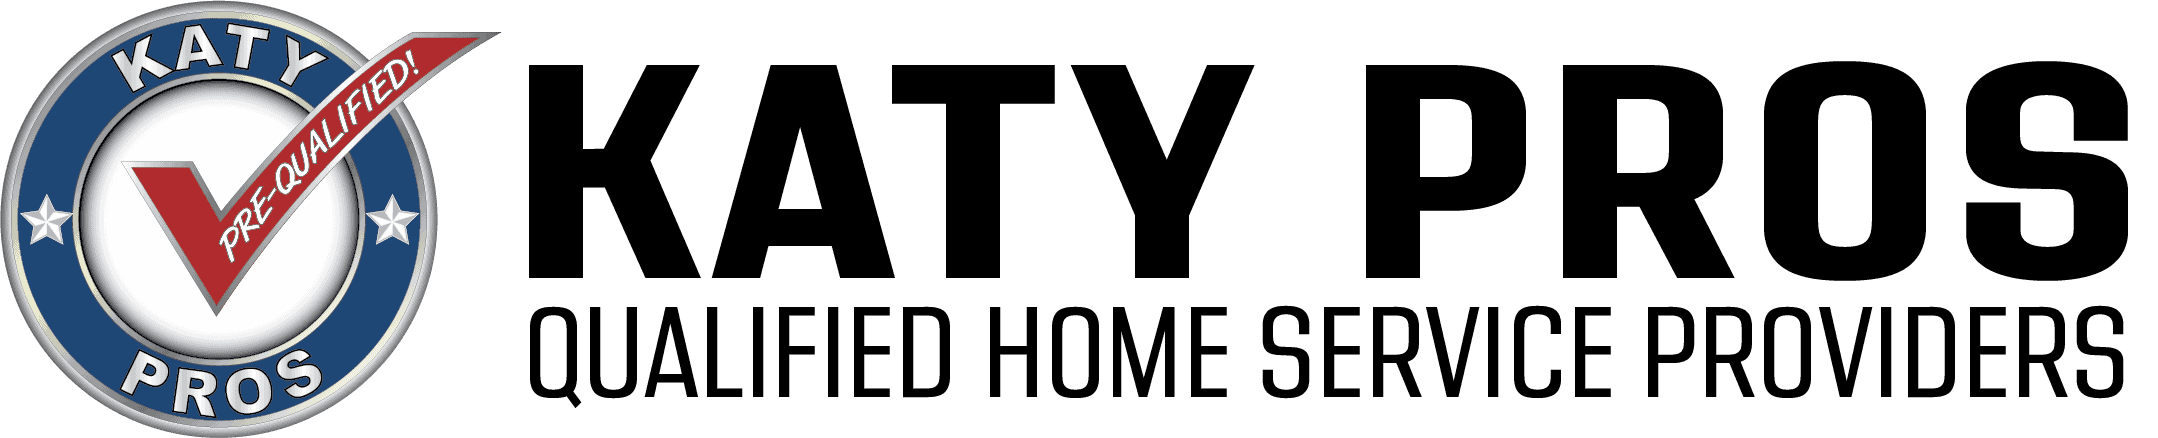 Katy Pros | Pre-qualified Home Service Providers | (281) 398-PROS [7767]